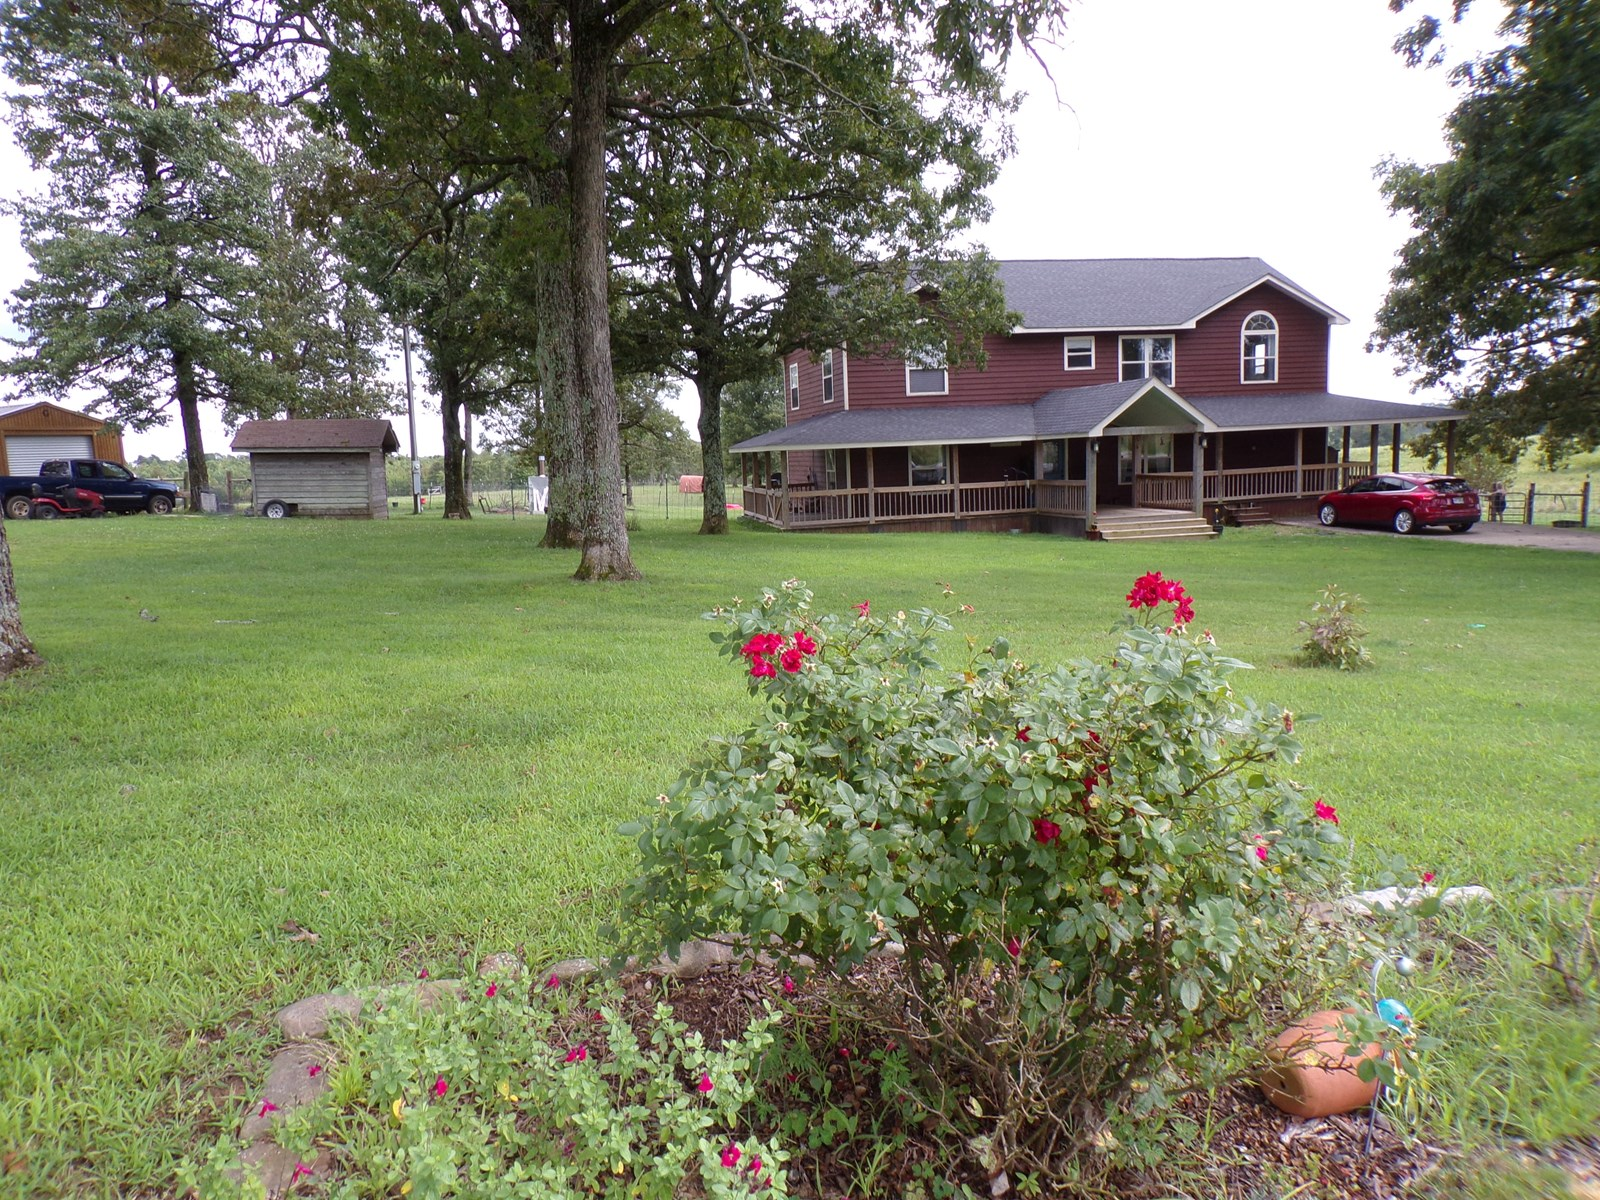 Arkansas Ozarks Country Home with Acreage For Sale